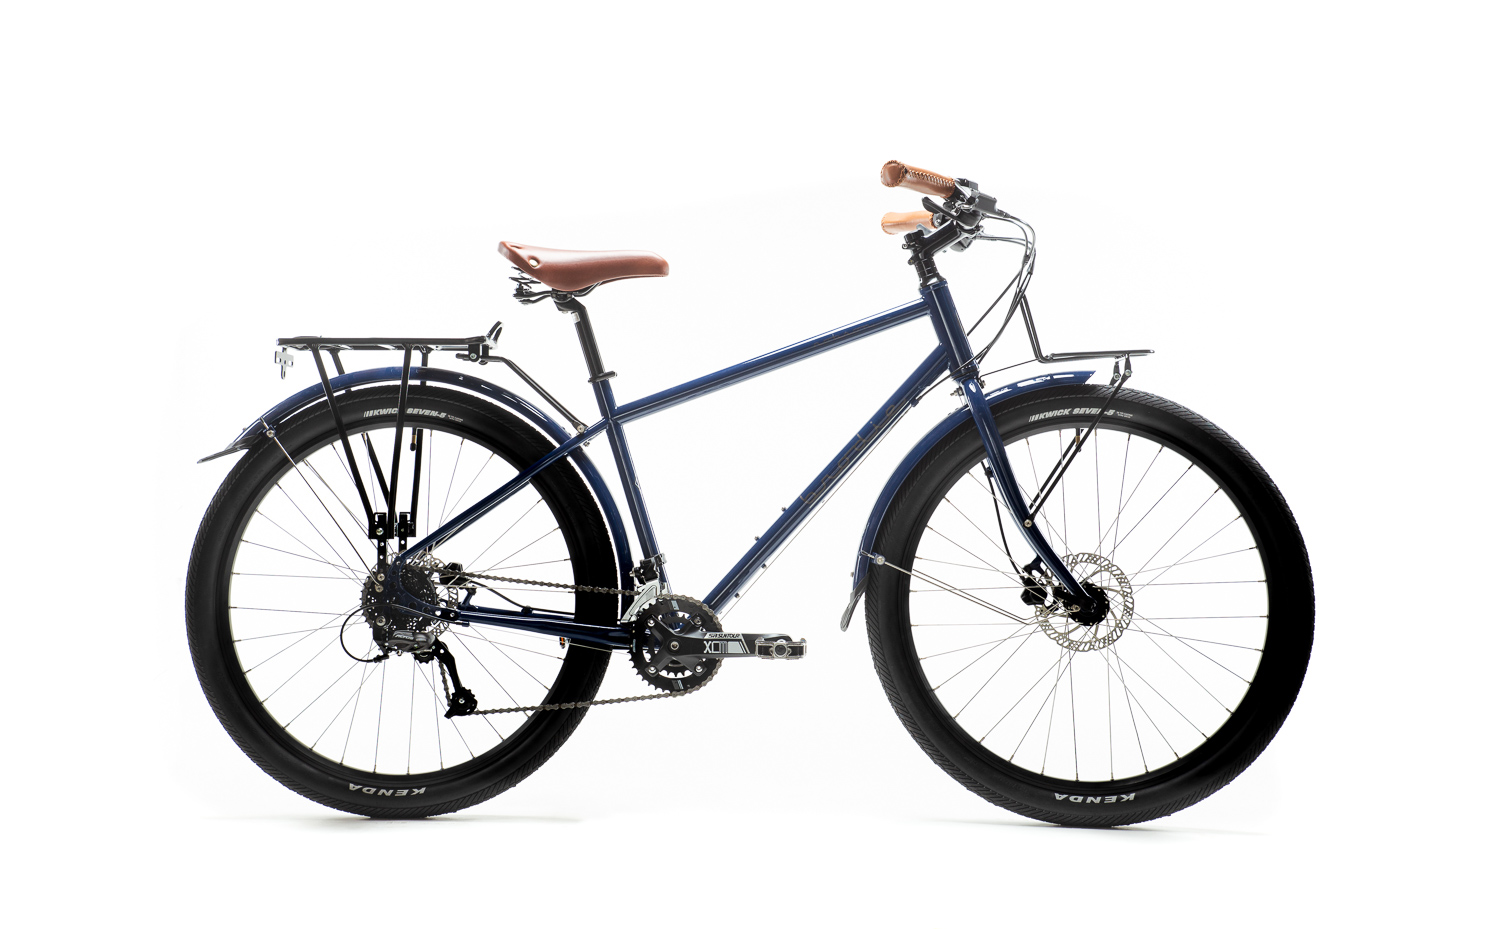 Please note, the production version of the Robson will come with matching brown side walled tires as pictured below.